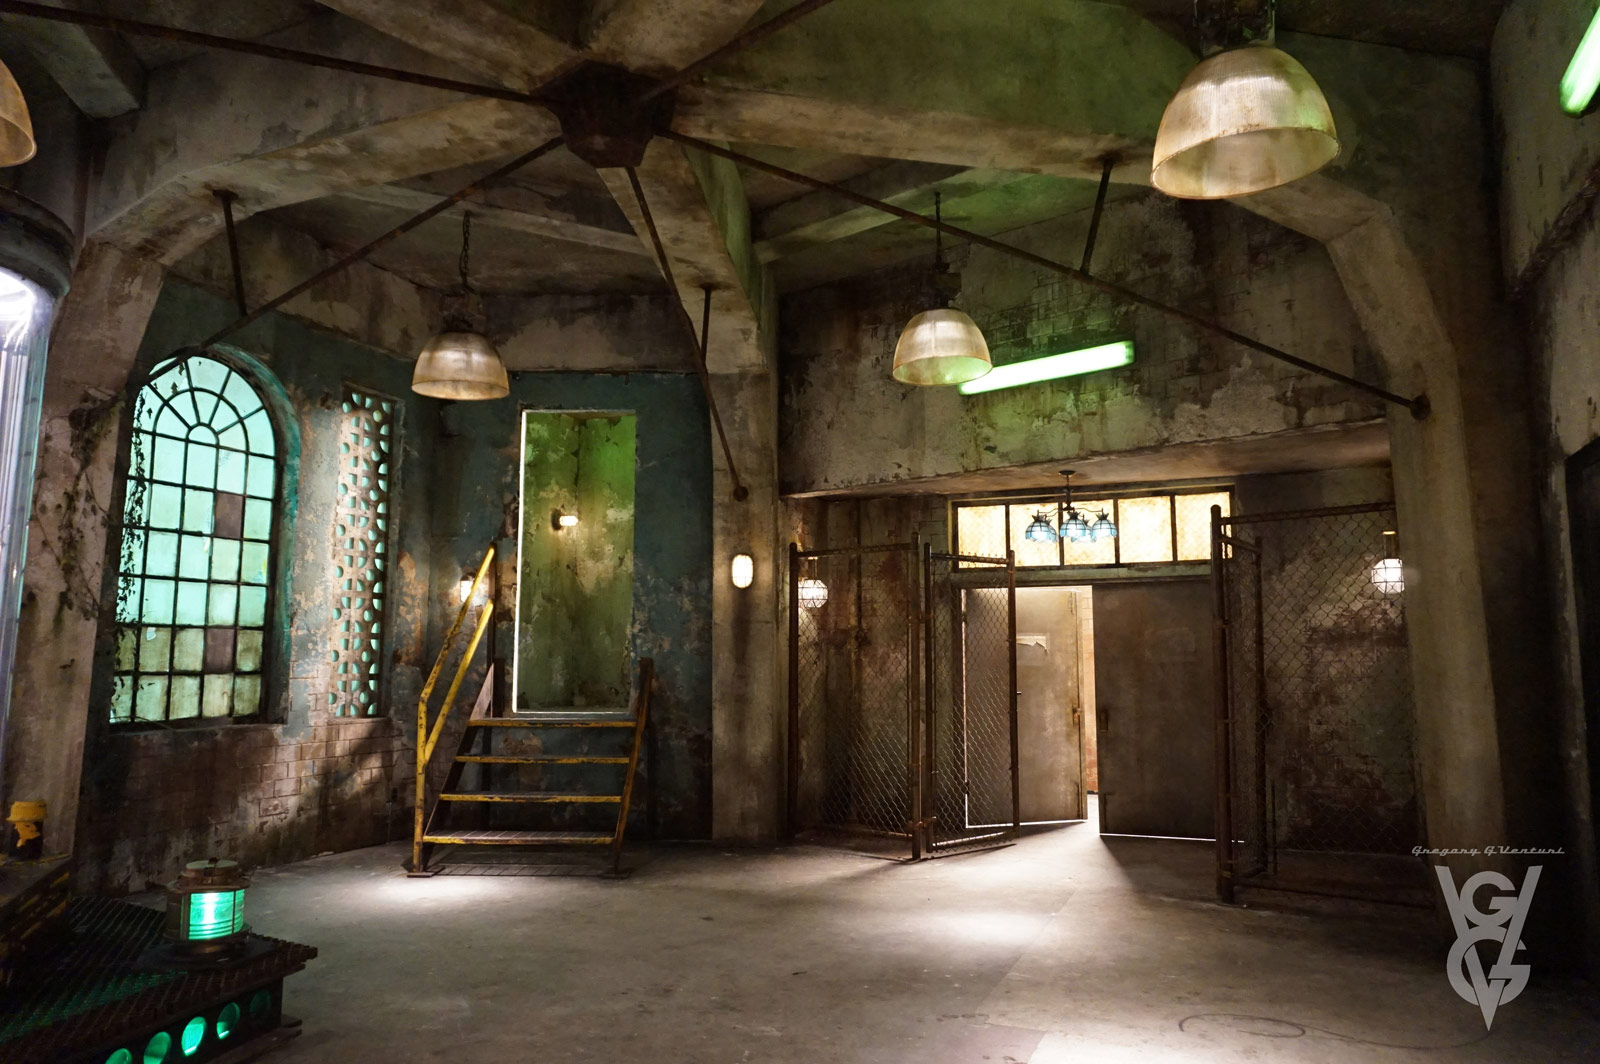 CHARMED: S1 - ABANDONED INDUSTRIAL LAIR - SET PHOTO